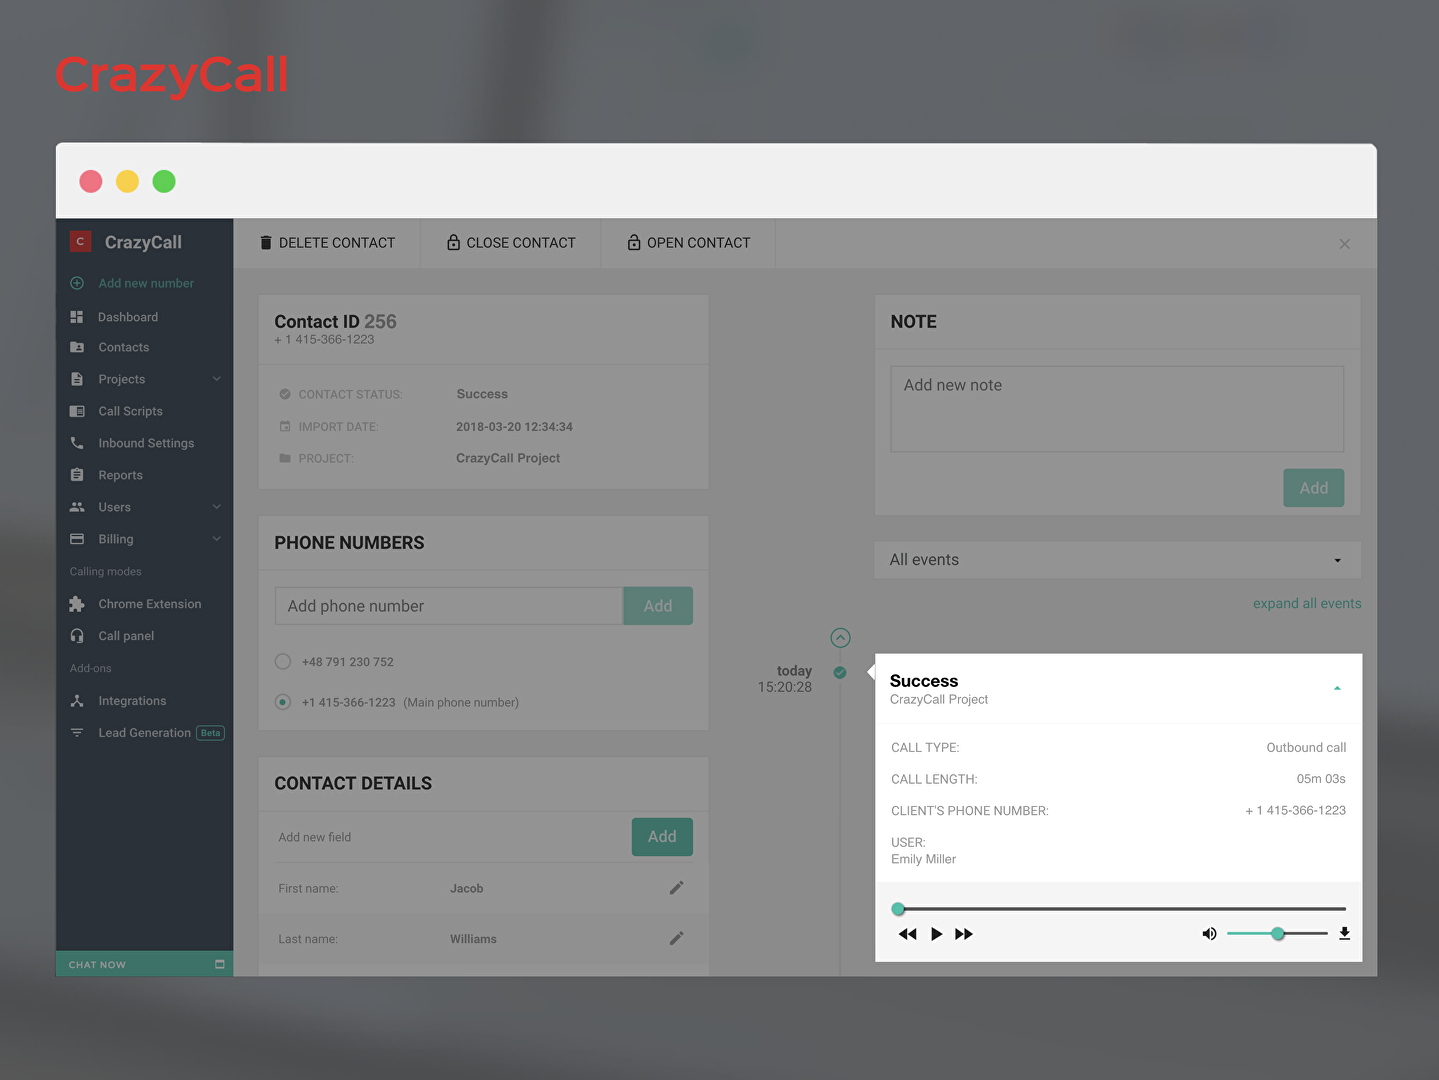 CrazyCall Reviews: Overview, Pricing and Features